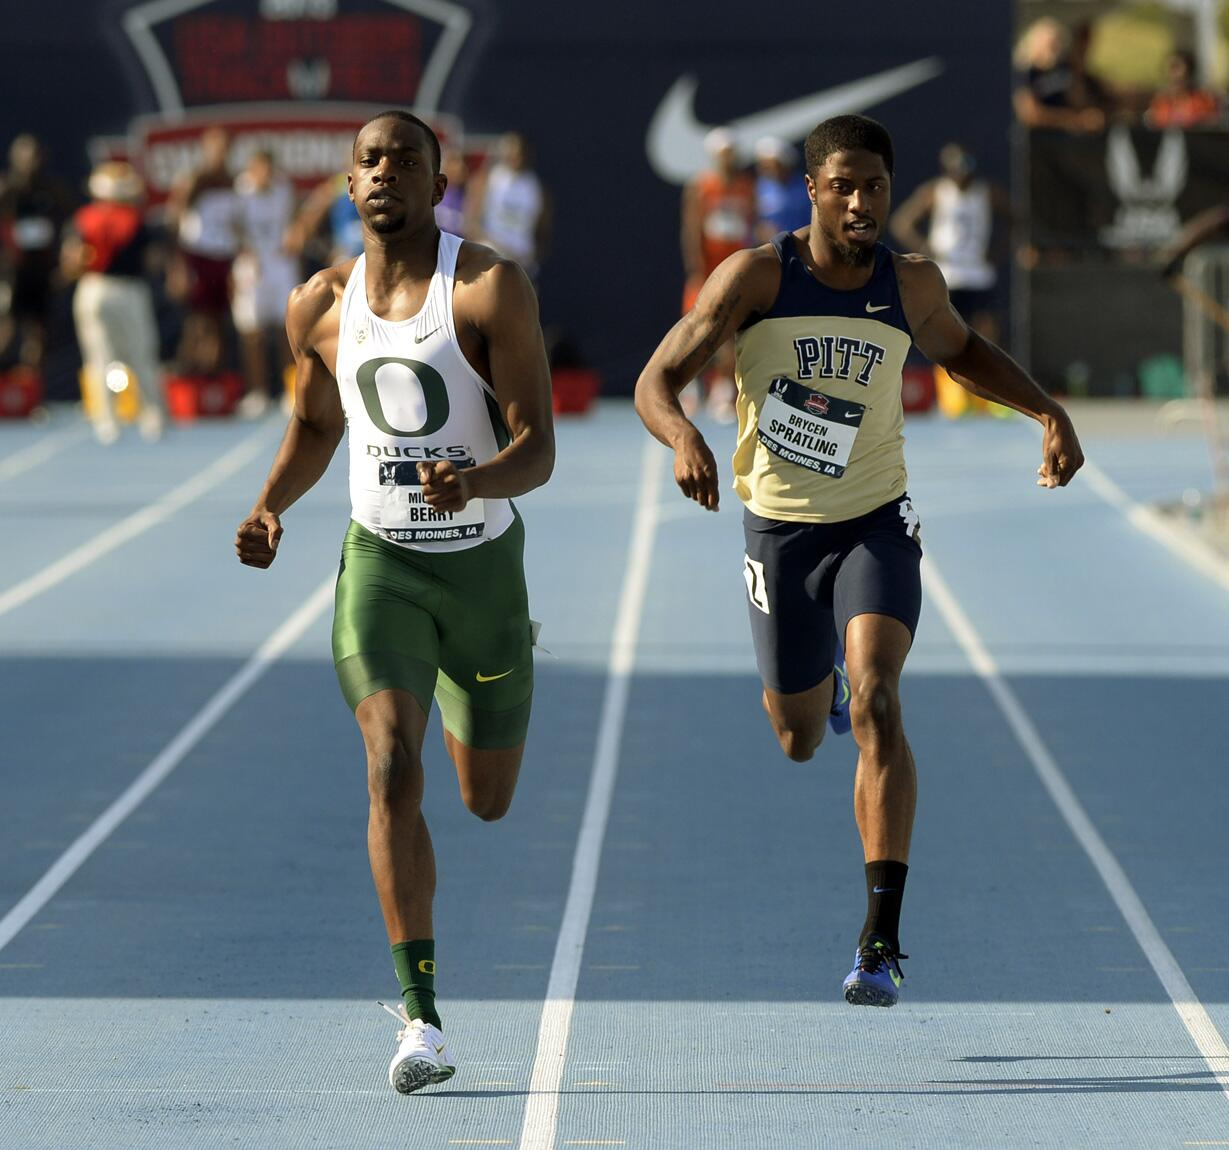 Mike Berry @OregonTF 45.58Q 400M @USATrack_Field #USAoutdoors 20 June 2013 http://t.co/1DOfvzkxnL